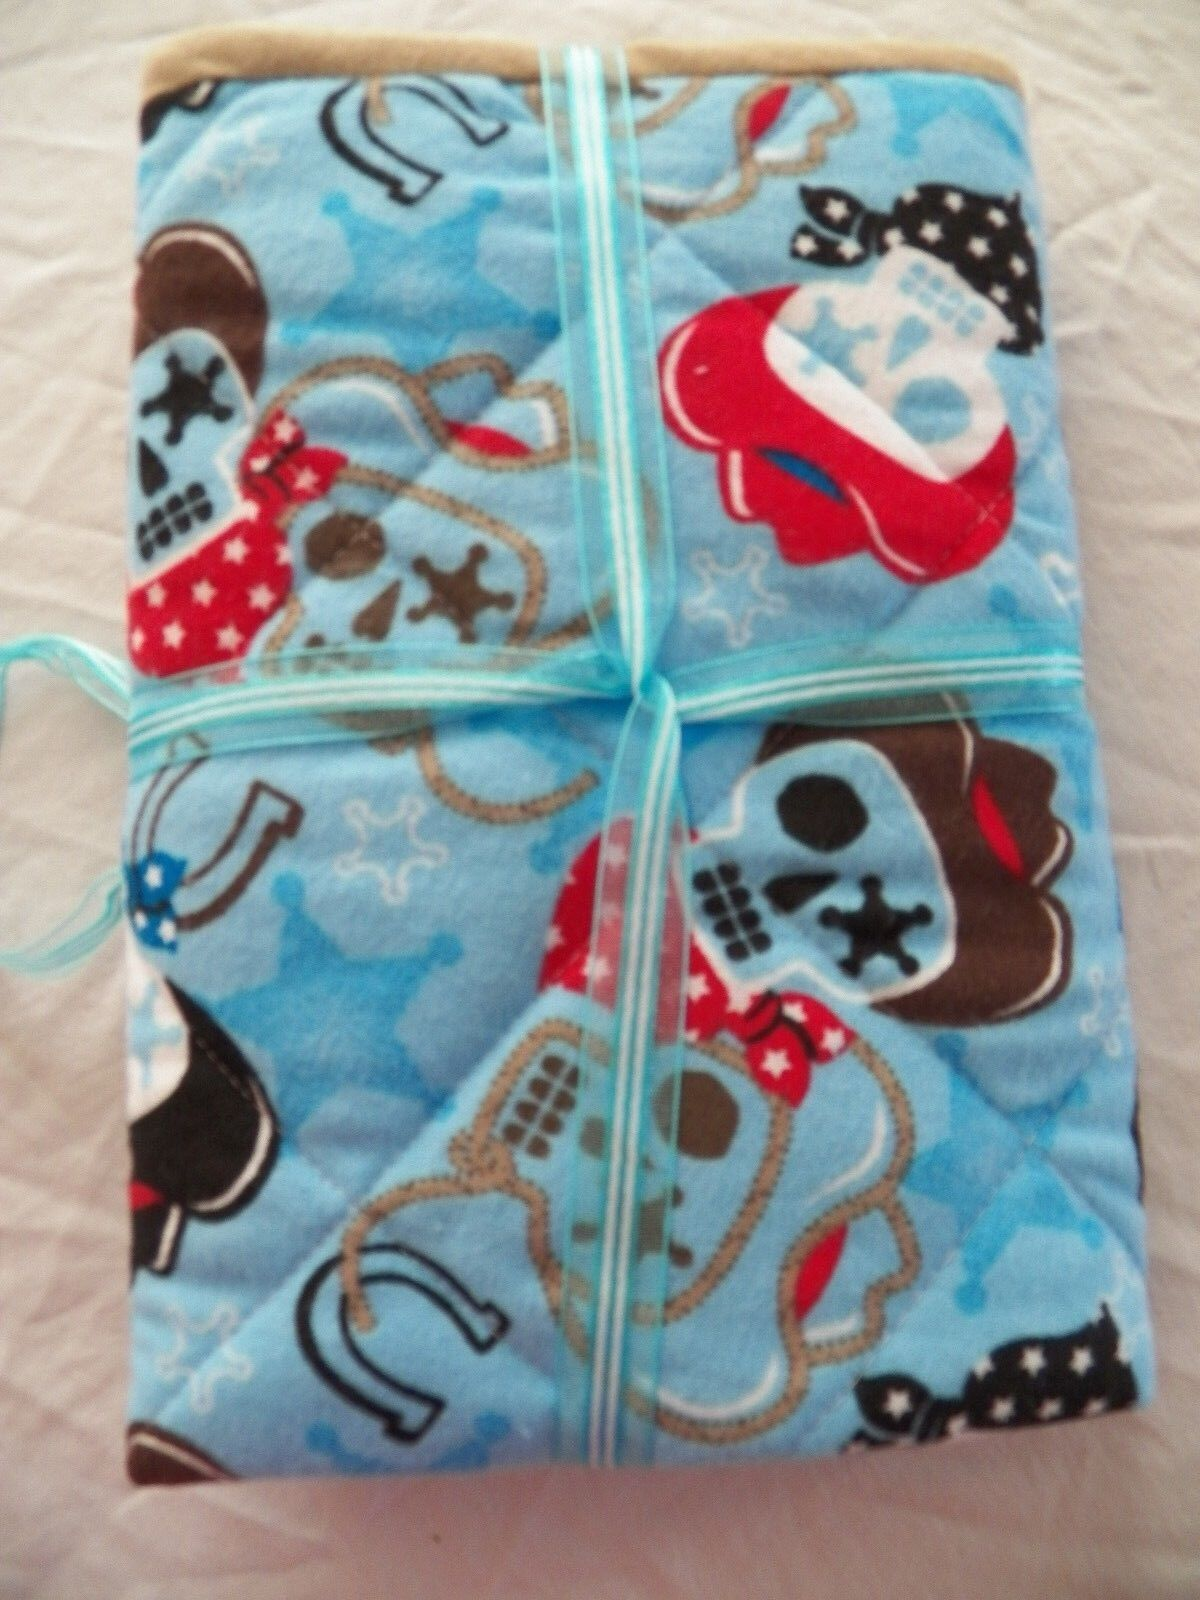 BABY CHANGING PAD Portable Diaper Travel Mat Cotton Washable Padded Handmade NEW 26